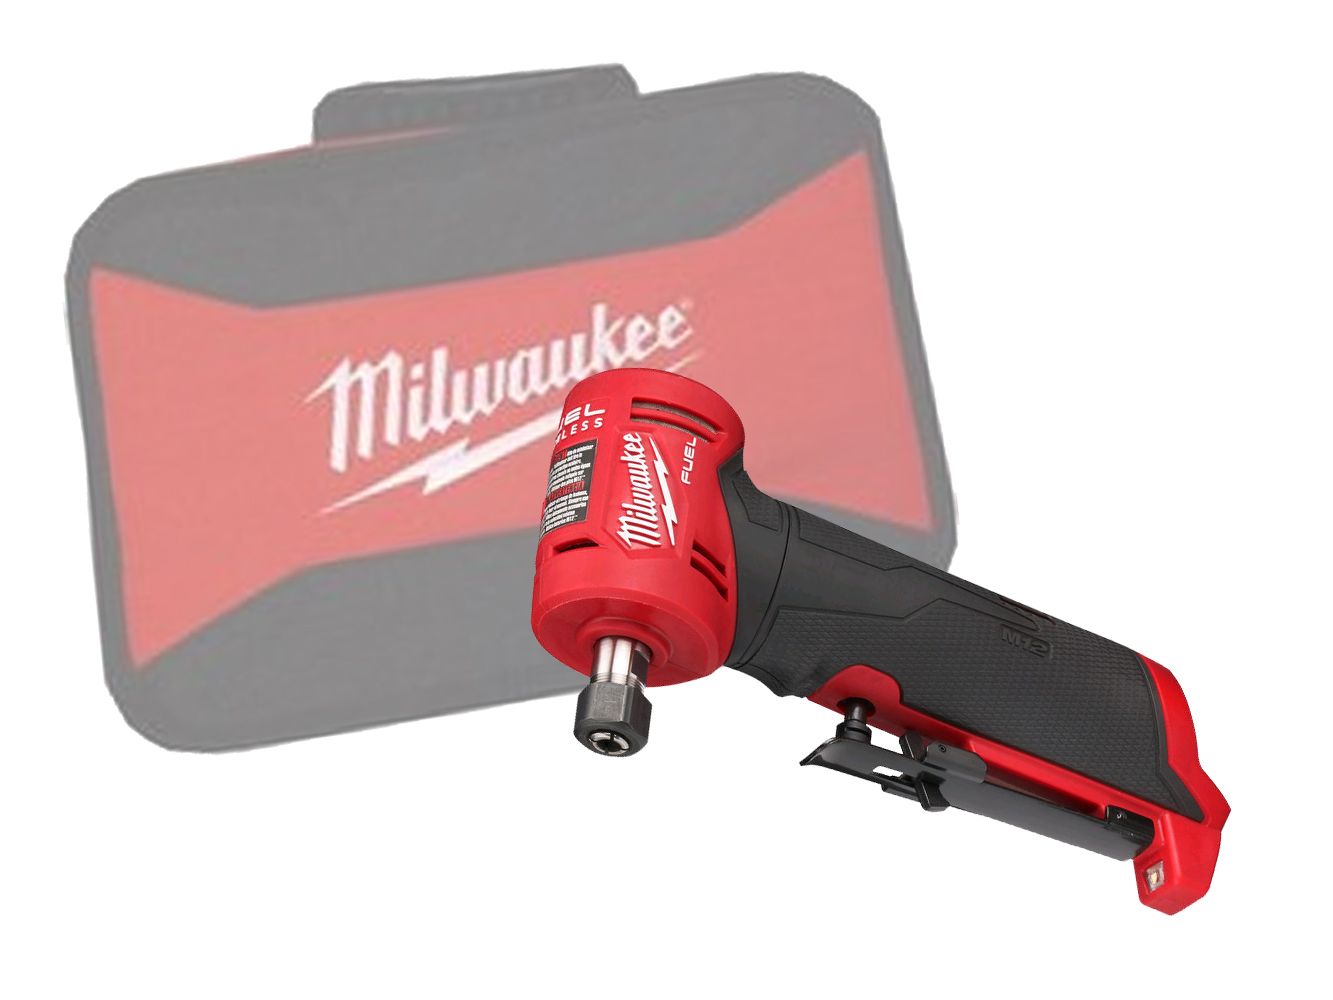 Milwaukee M12FDGA 12V Fuel Brushless Angled Die Grinder - Body Only